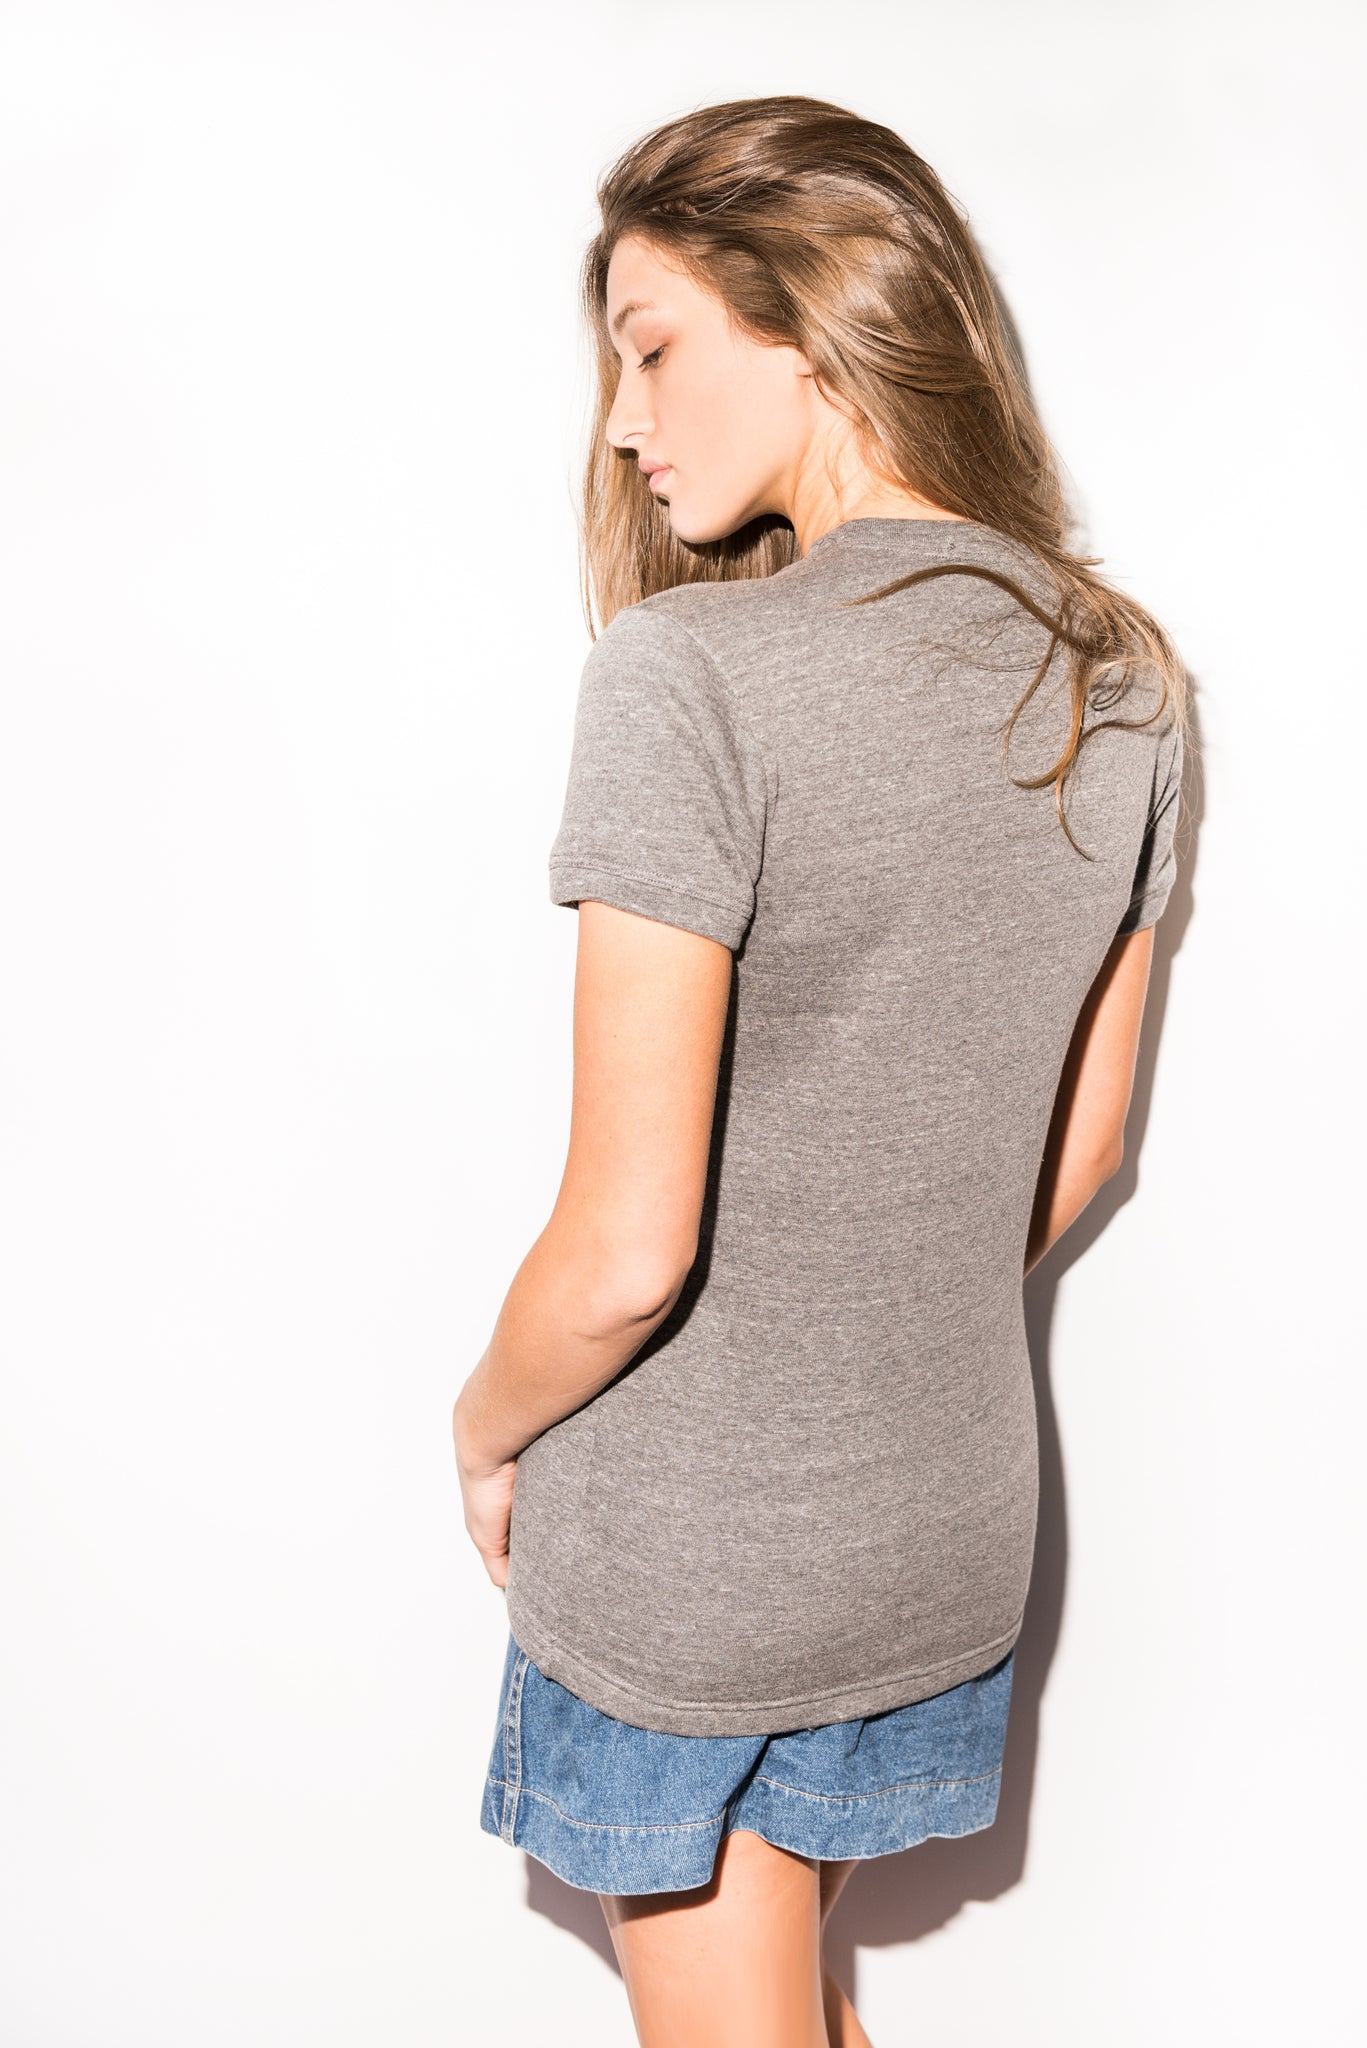 WOMEN'S FRENCH TERRY TEE - HEATHER GREY